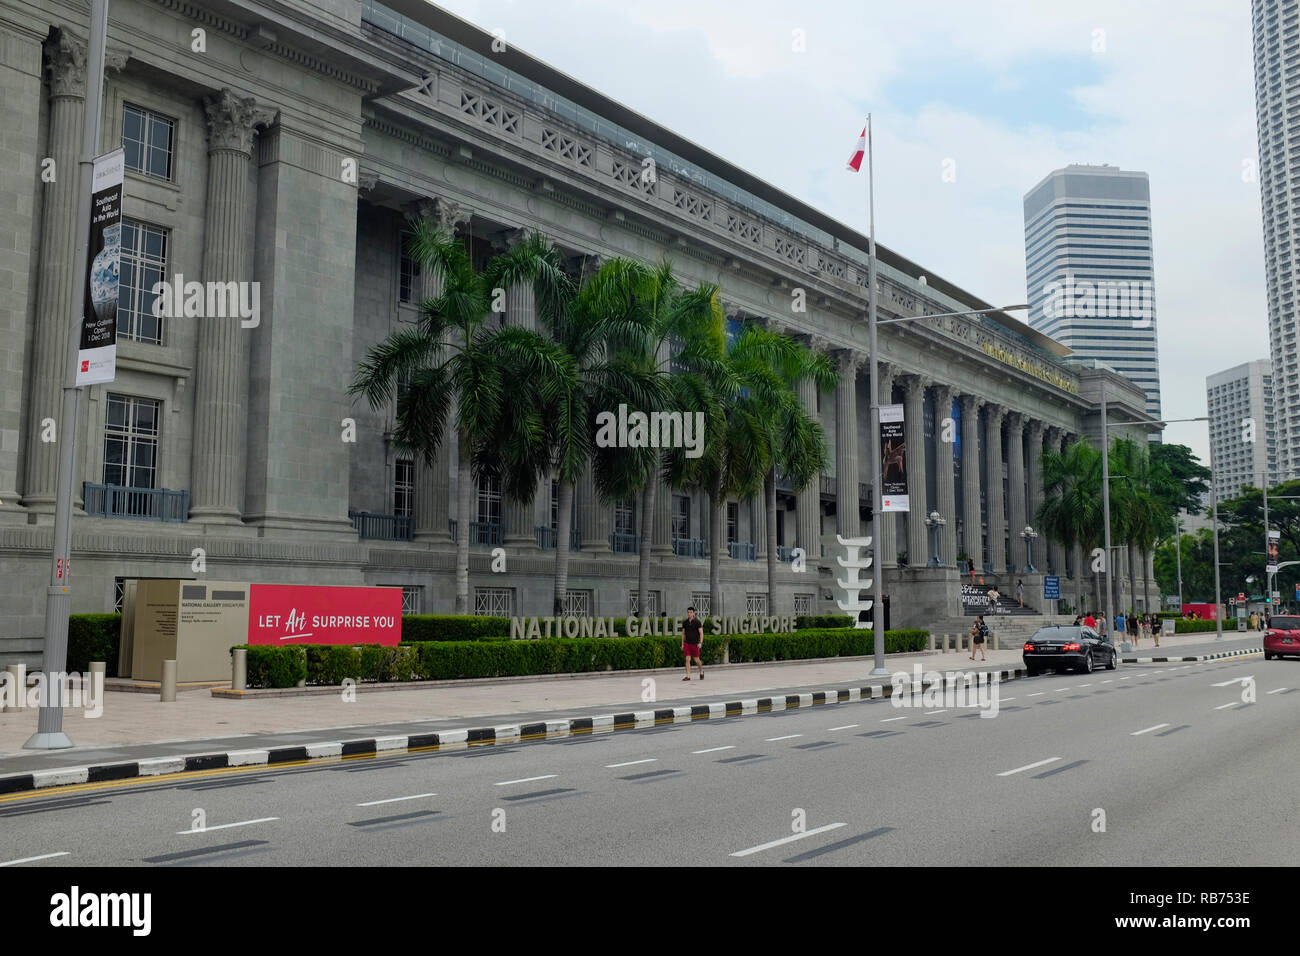 The National Gallery Singapore, Southeast Asia. - Stock Image